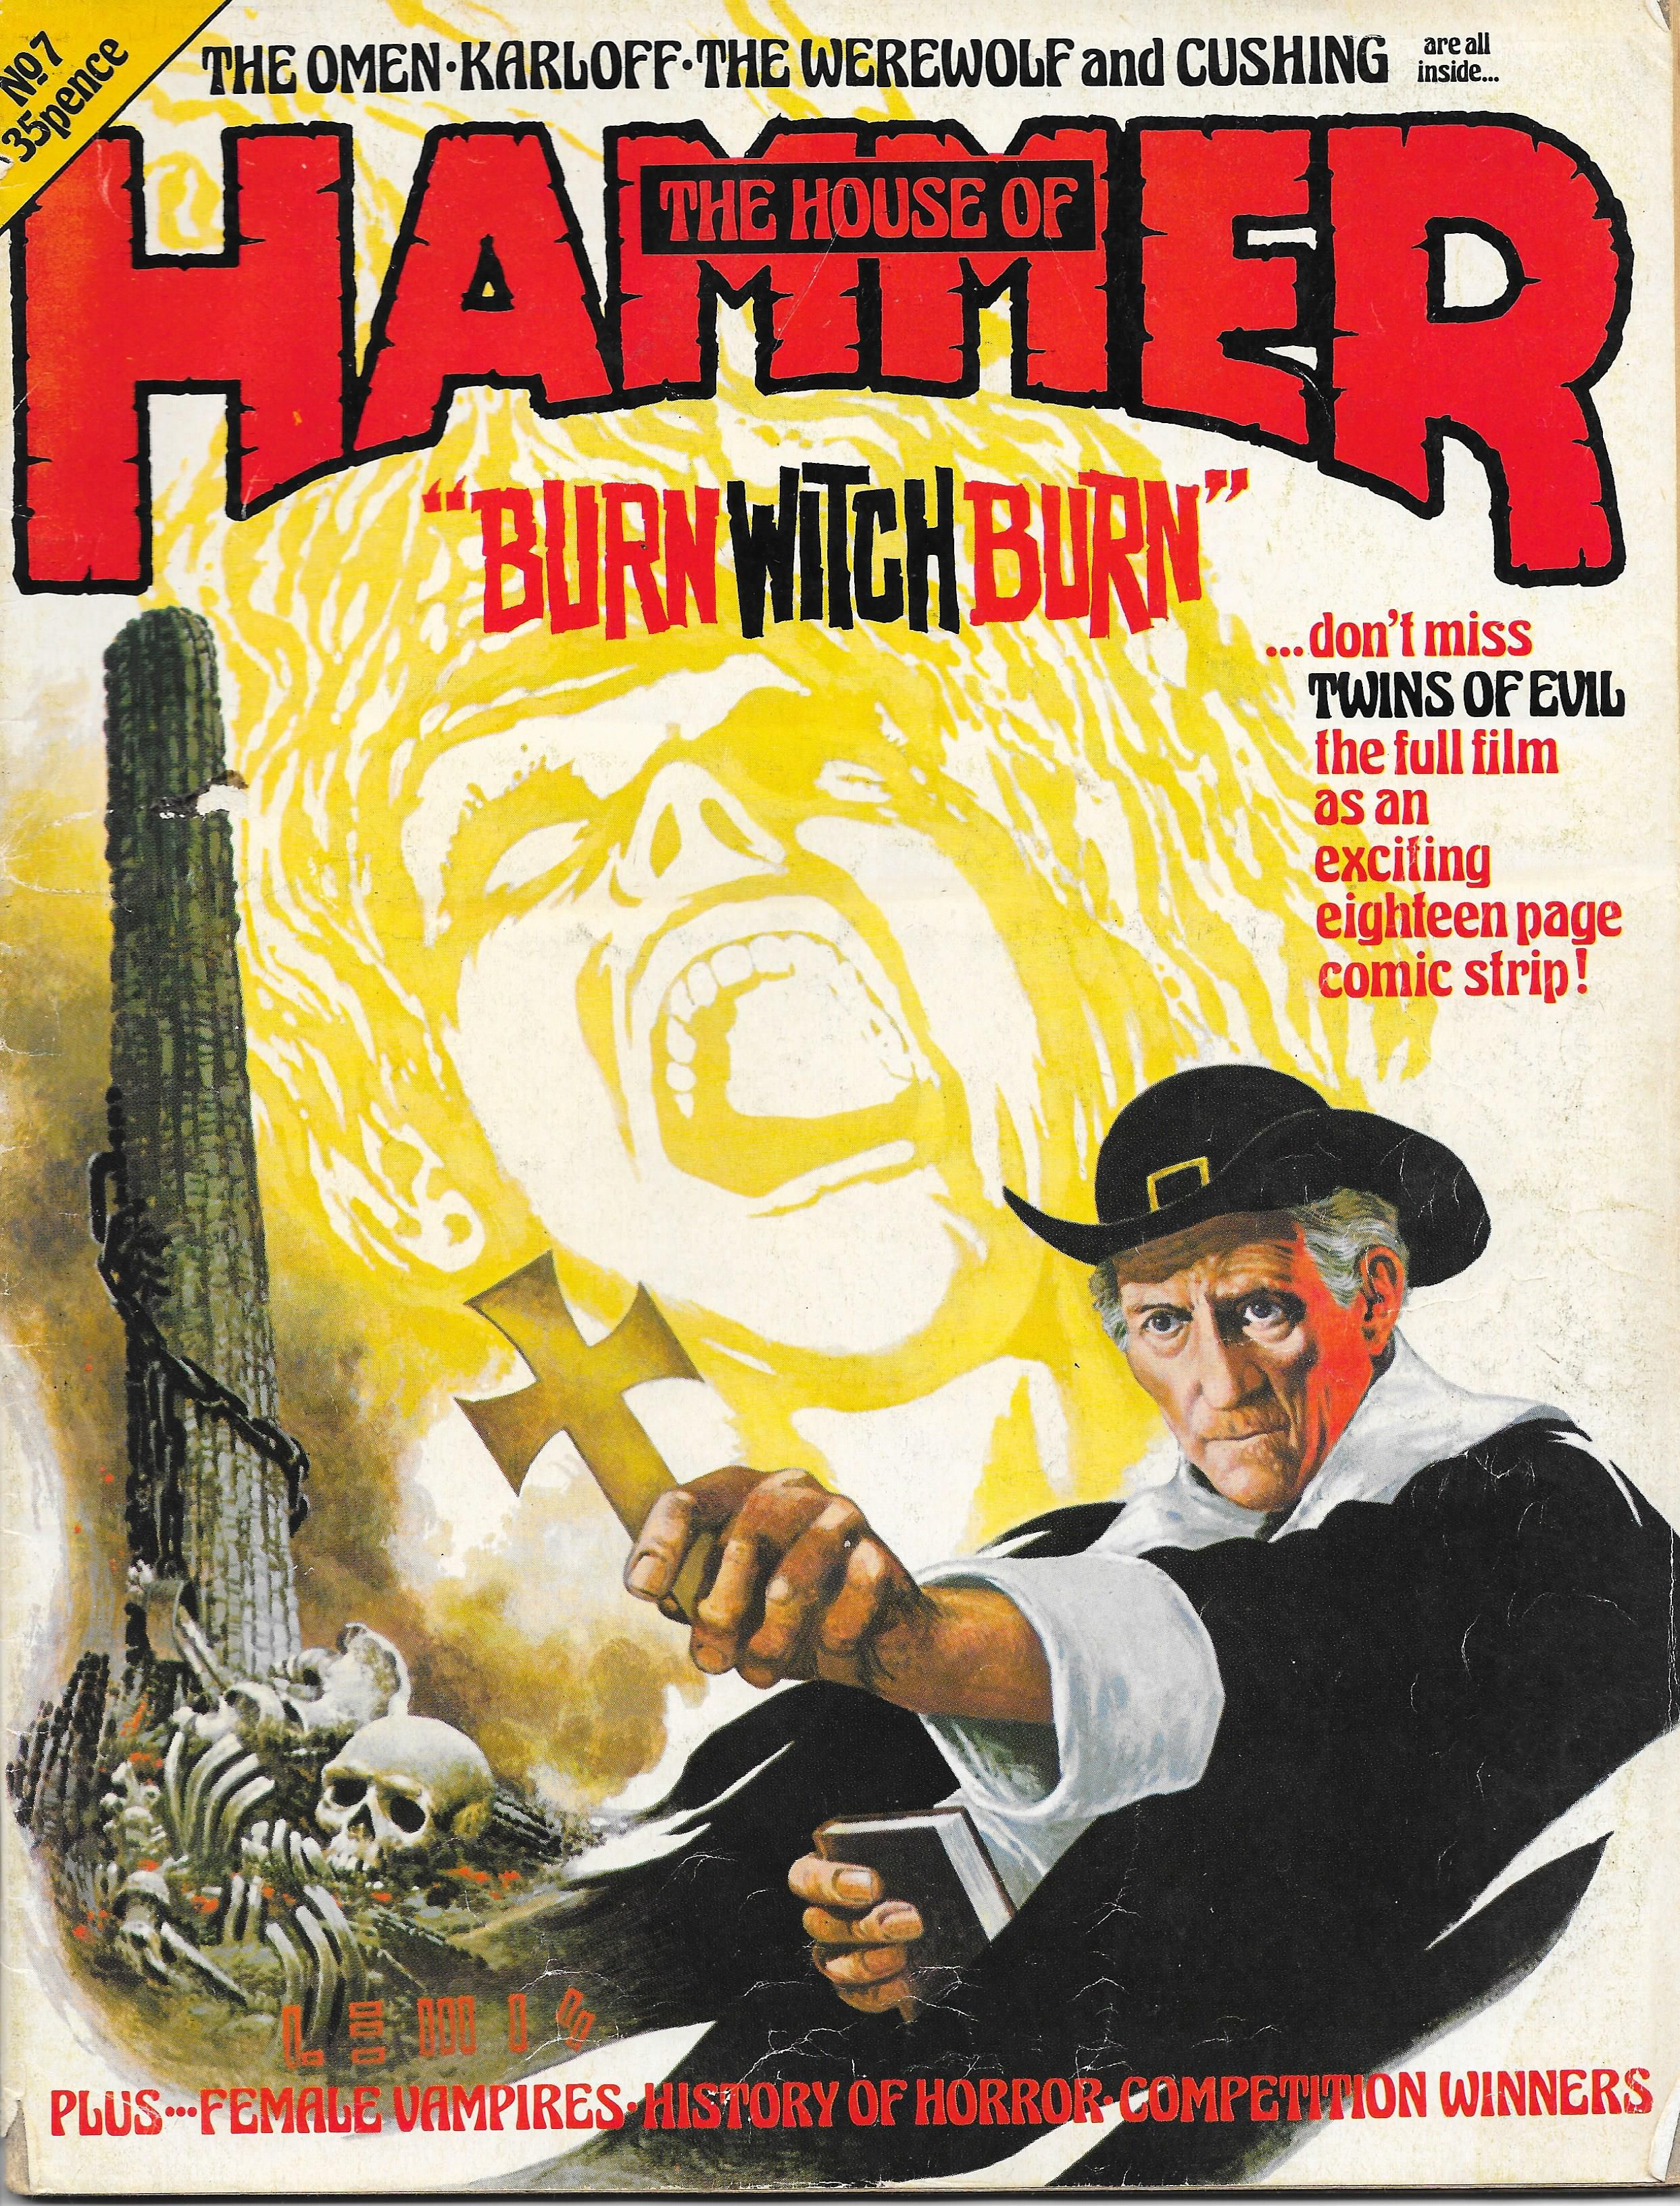 The House Of Hammer cover for 'the house of hammer issue 7. cover art by brian